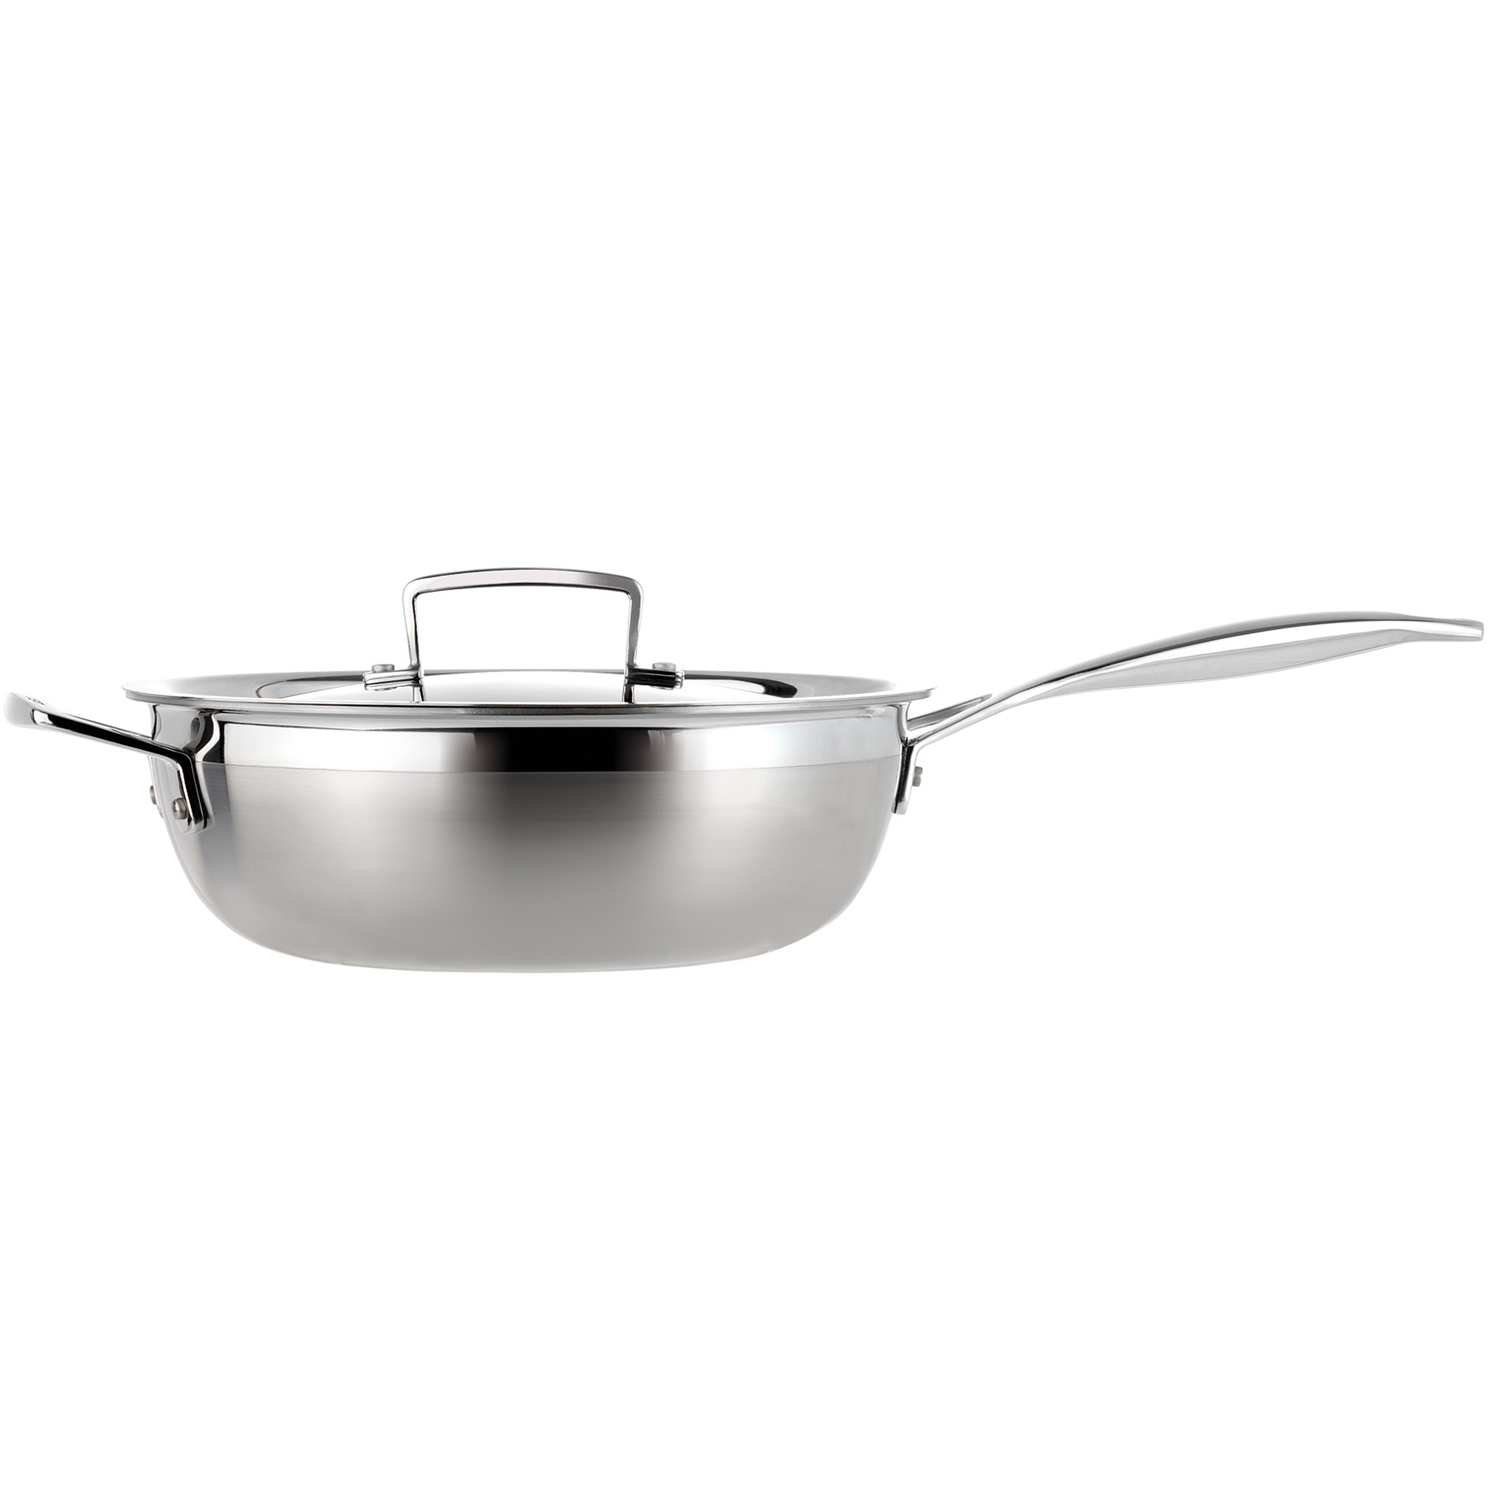 Image of Le Creuset 3-Ply Stainless Steel Chefs Pan, 24cm